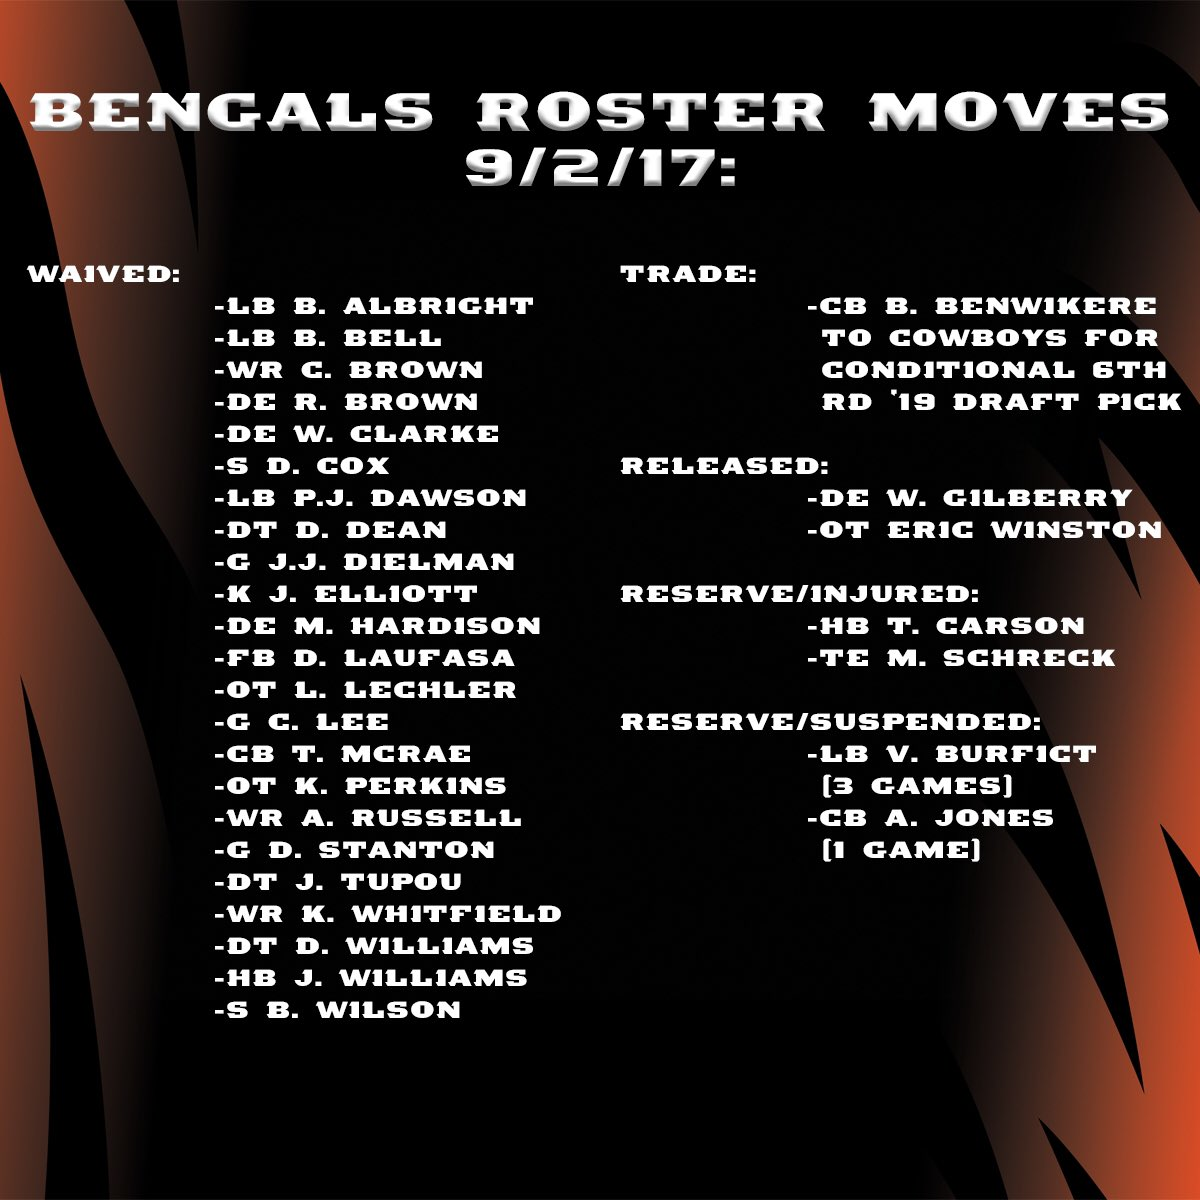 We've made the following 30 moves to reach the NFL roster limit of 53. #Bengals50 https://t.co/idCZNFE6W5